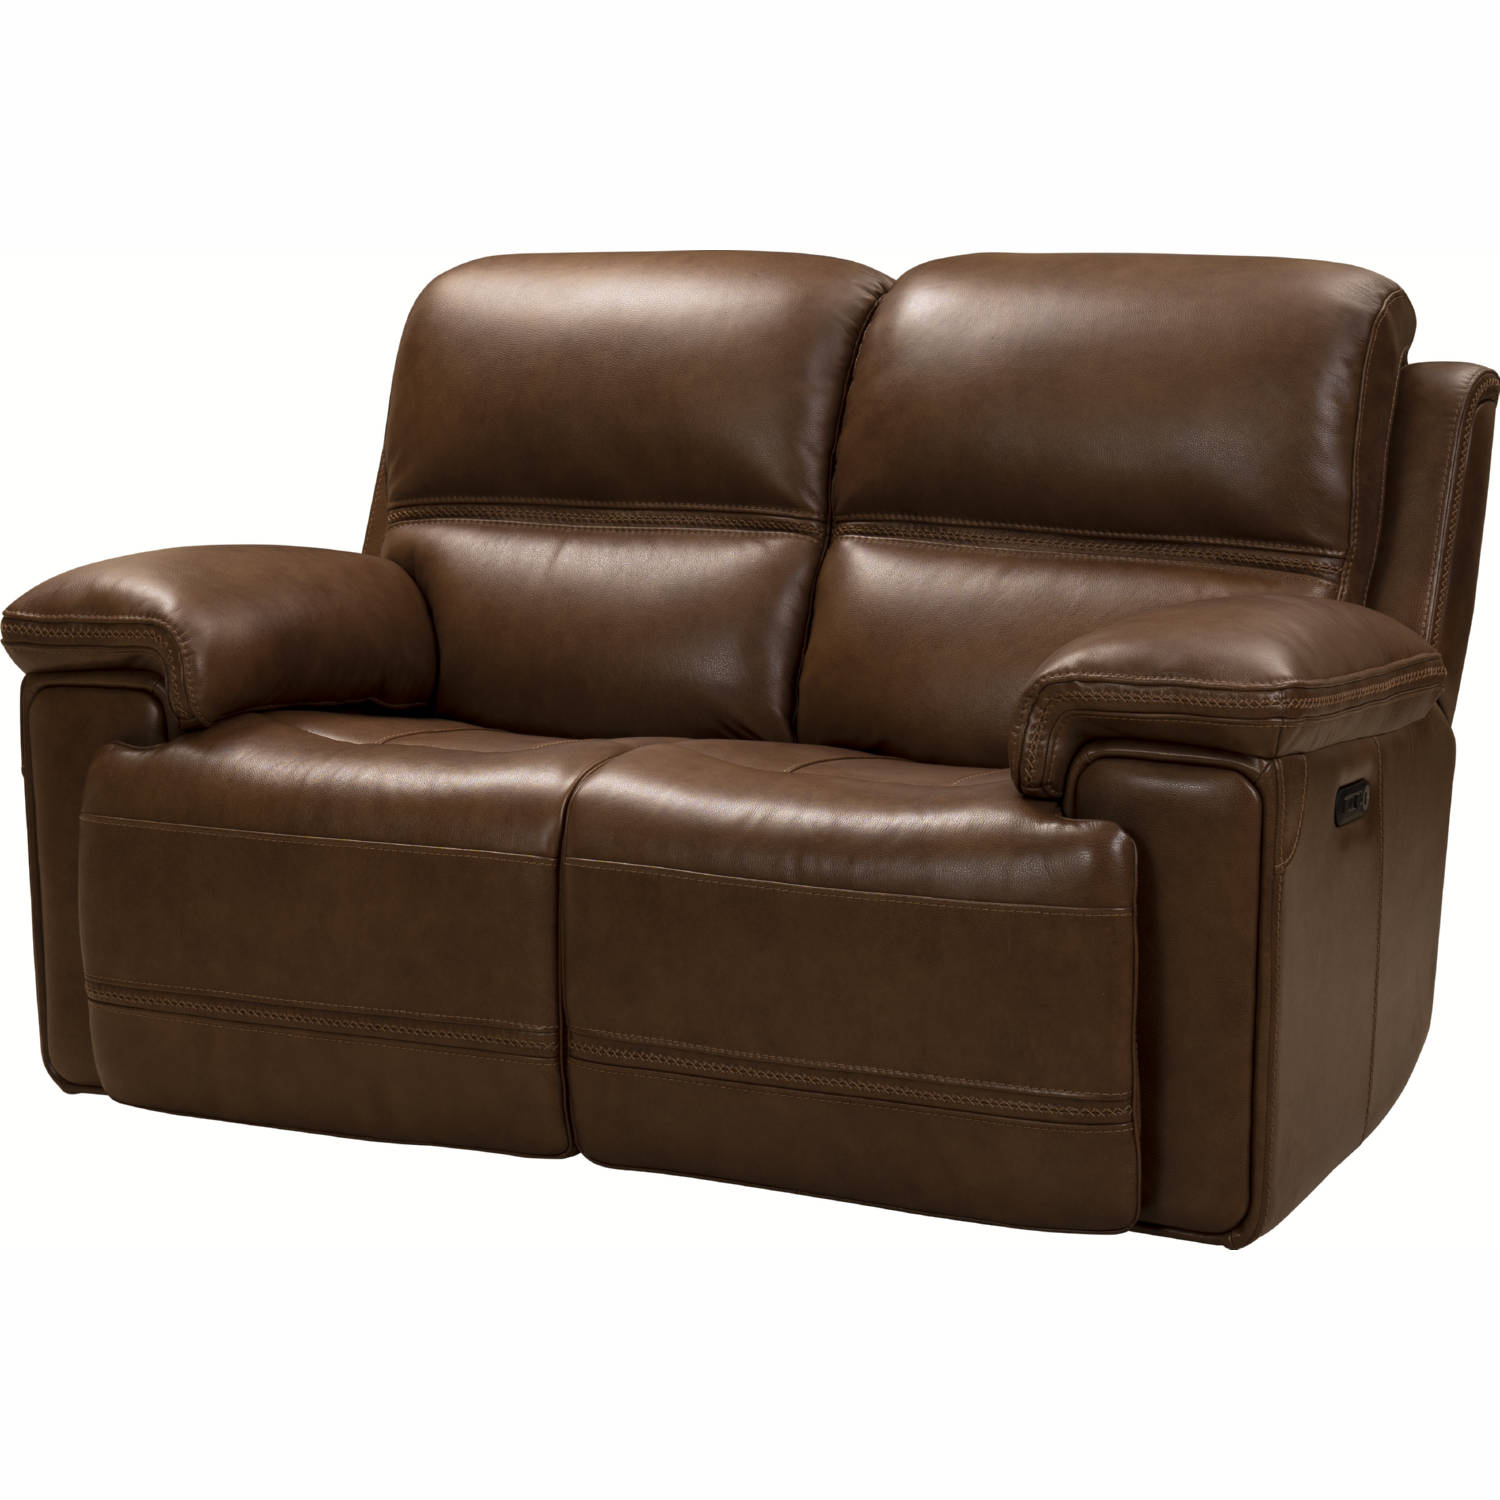 Strange Sedrick Power Reclining Sofa In Spence Caramel Brown Leather By Barcalounger Beatyapartments Chair Design Images Beatyapartmentscom